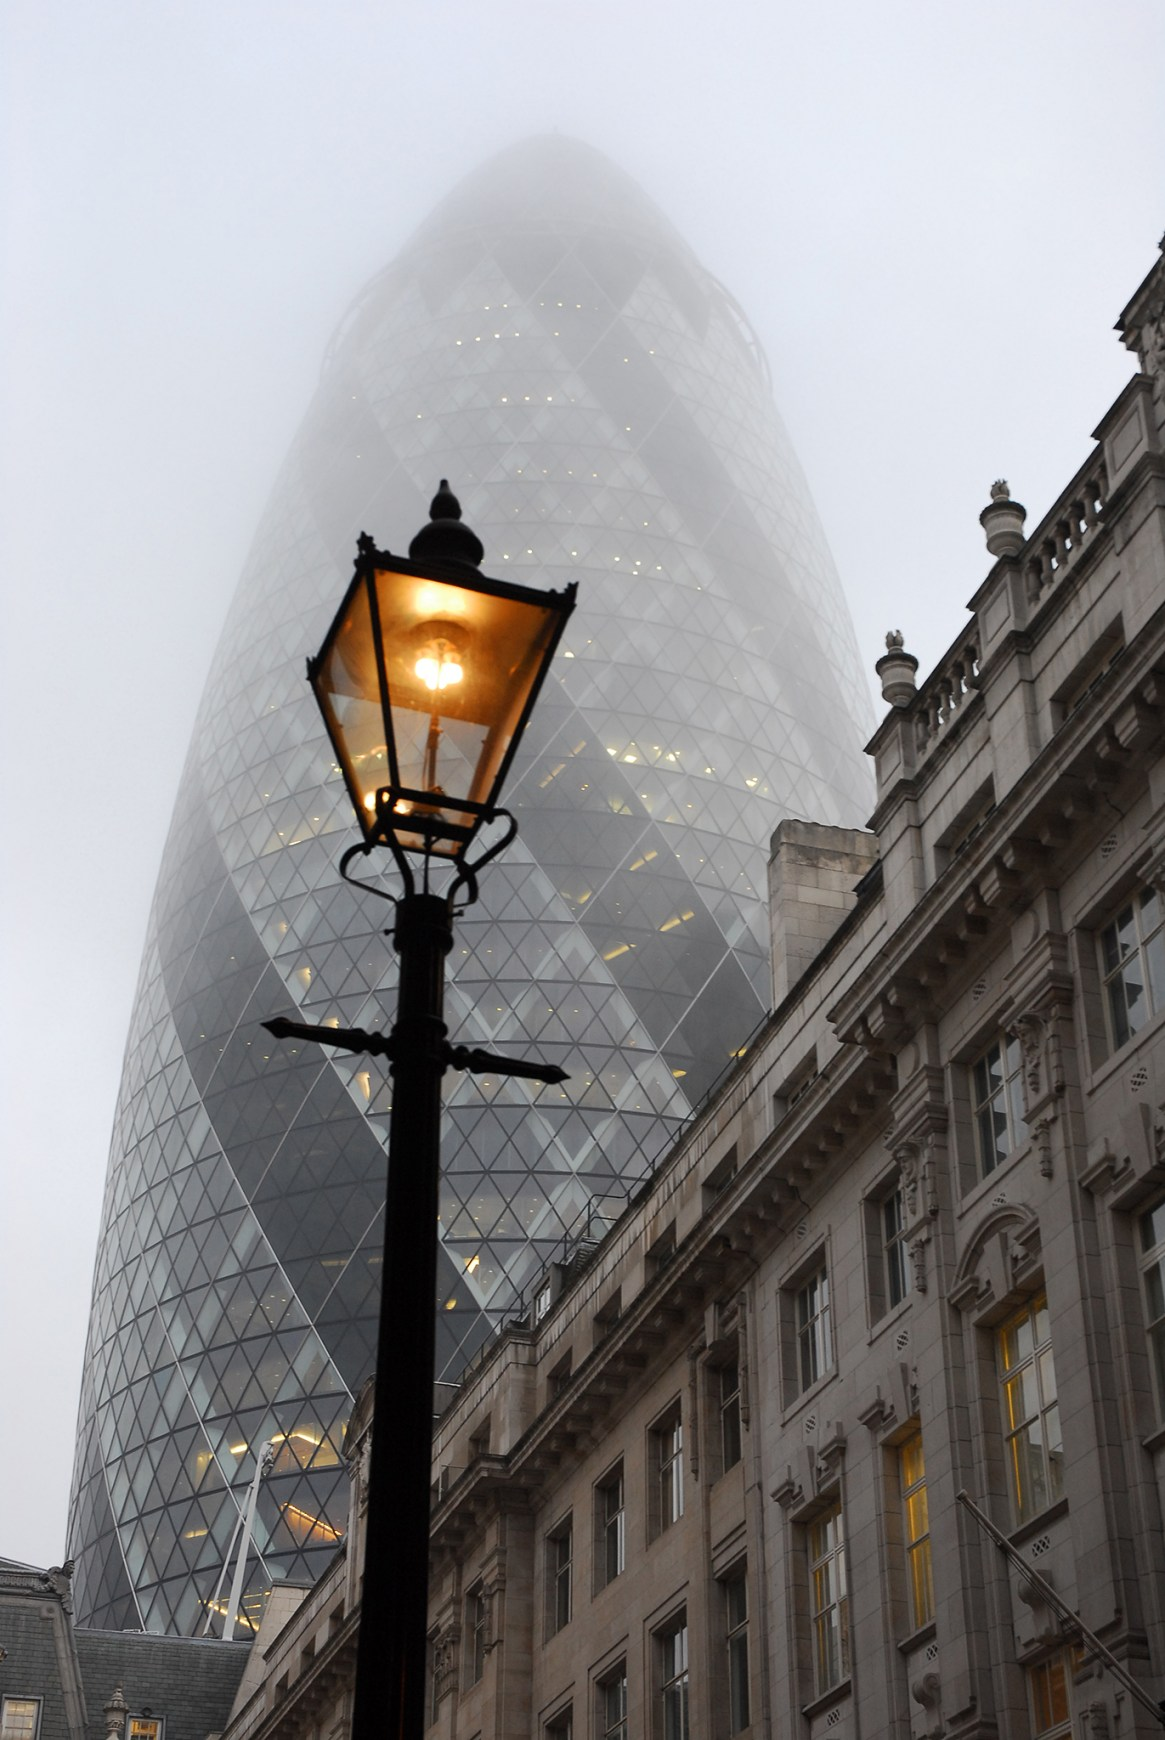 The Swiss Re building (aka The Gurkin) viewed from a misty alleyway, London